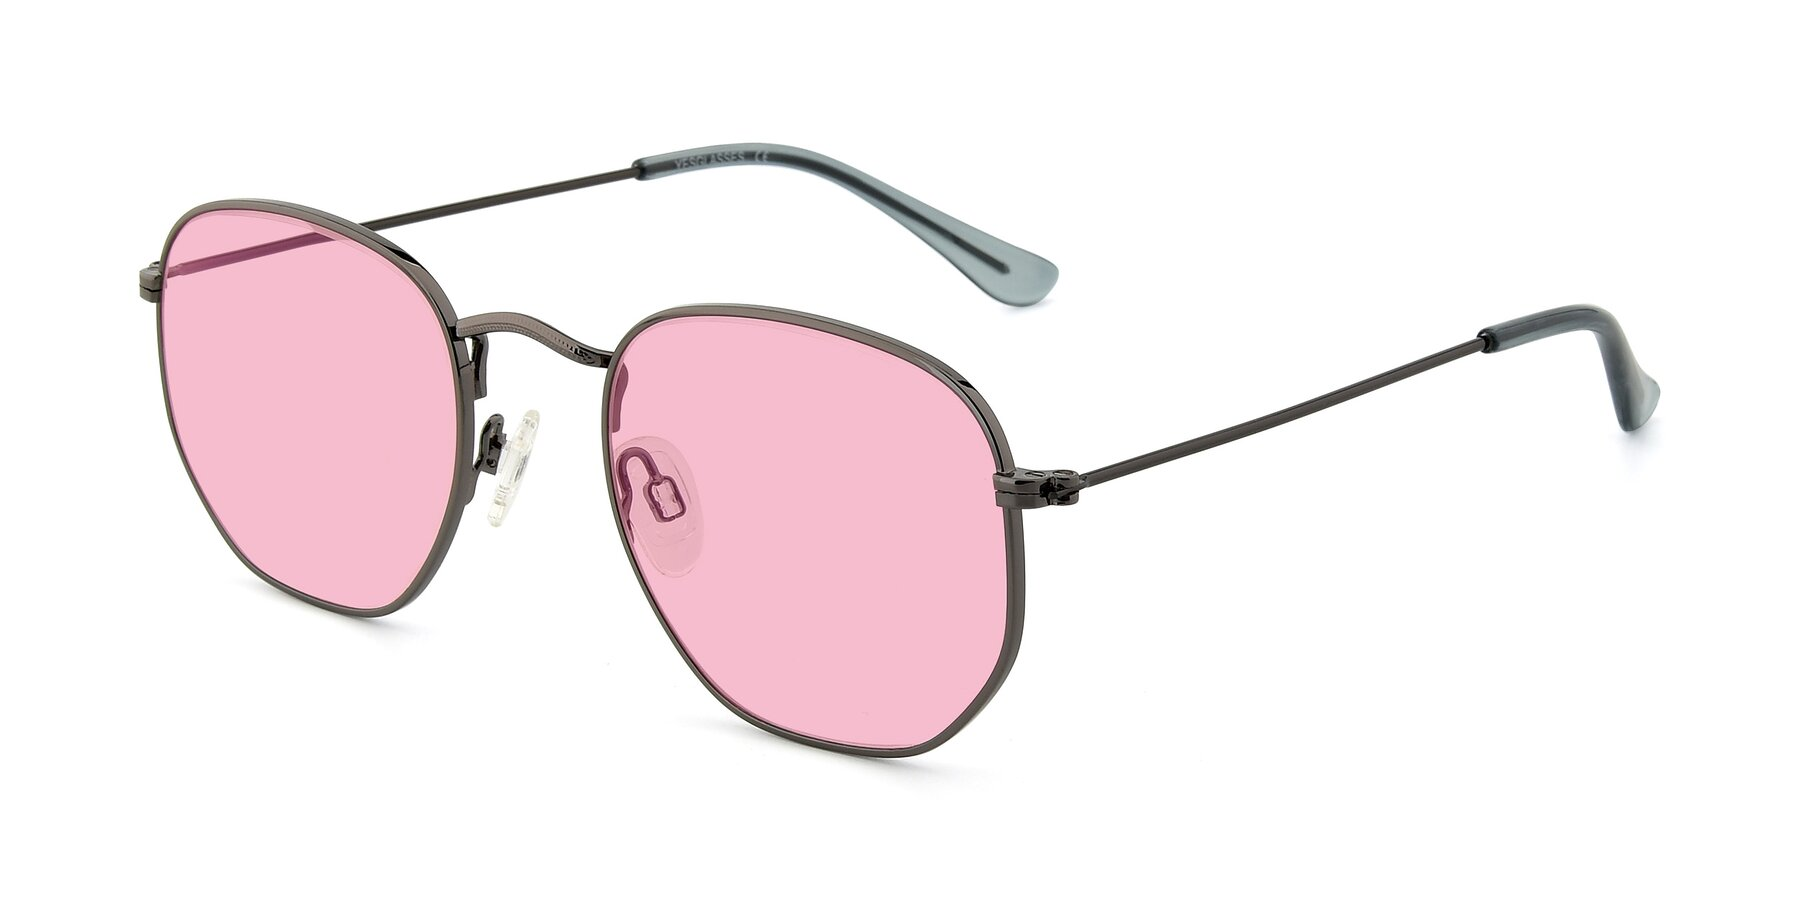 Angle of SSR1944 in Grey with Medium Pink Tinted Lenses